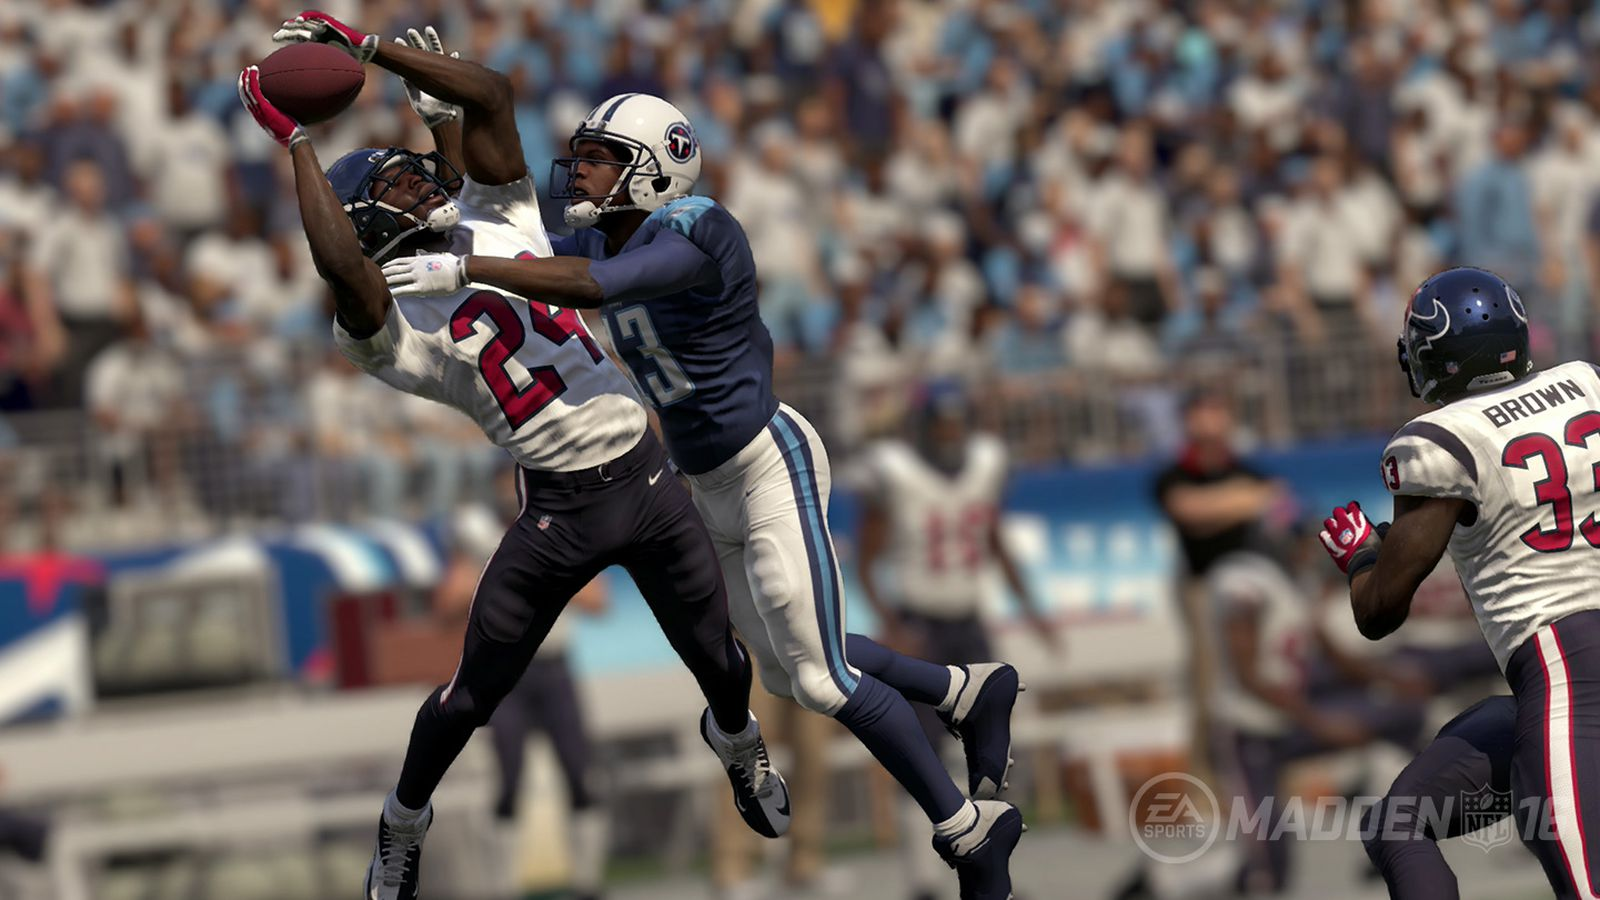 Madden Nfl 16 Gets Fantasy Football Inspired Mode